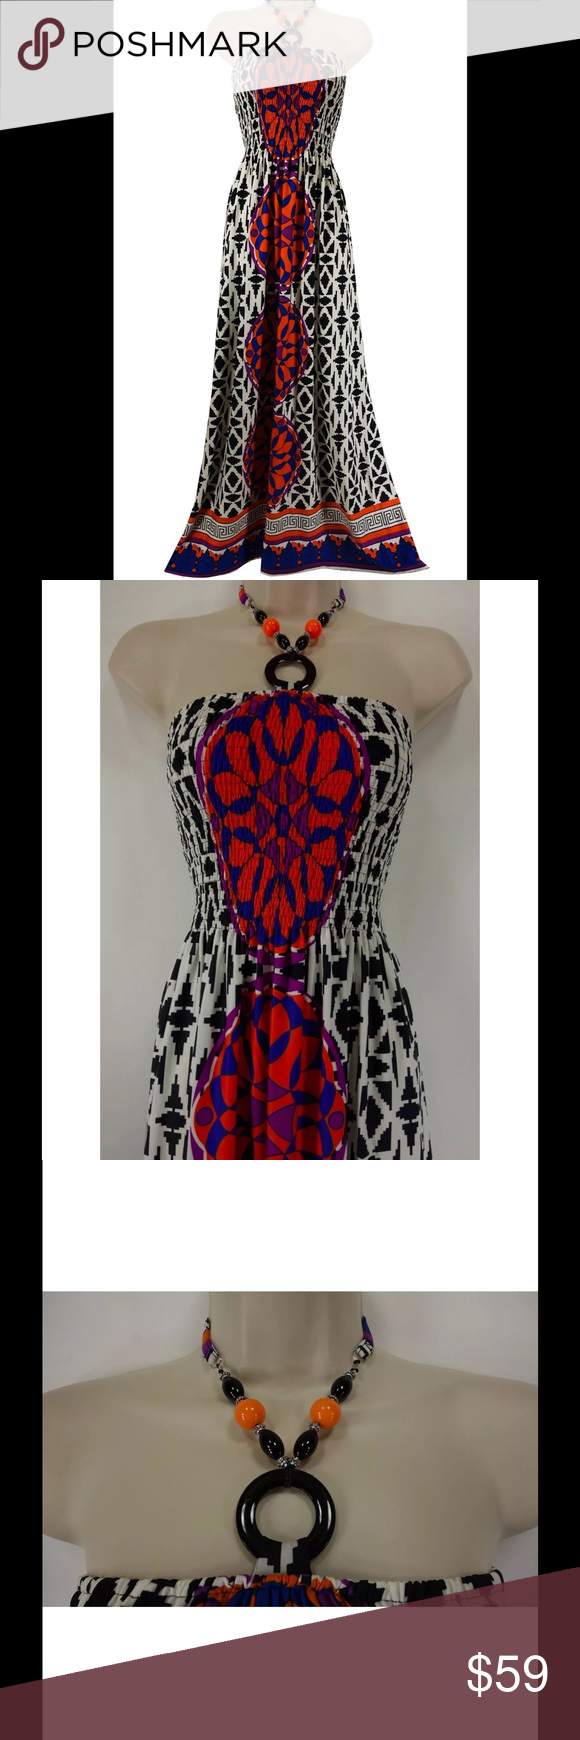 """Size 1X NWT Beaded Halter MAXI DRESS Plus Size This eye-catching maxi dress is sexy, trendy, and fashionable!   Size: 1X Slip on/ slip off All-around smocked bust Maxi length Stunning print Buttery-soft fabric Beaded halter ties at the back of the neck Measurements: Bust (armpit to armpit):  29"""" relaxed - stretches to 55"""" Waist: 50"""" relaxed  Hips:  60"""" relaxed Length: 50"""" (armpit to bottom hem)  Condition:  BRAND NEW WITH TAGS! Fabric Content: 95% Polyester  5% Spandex Fabric Care:  Machine…"""